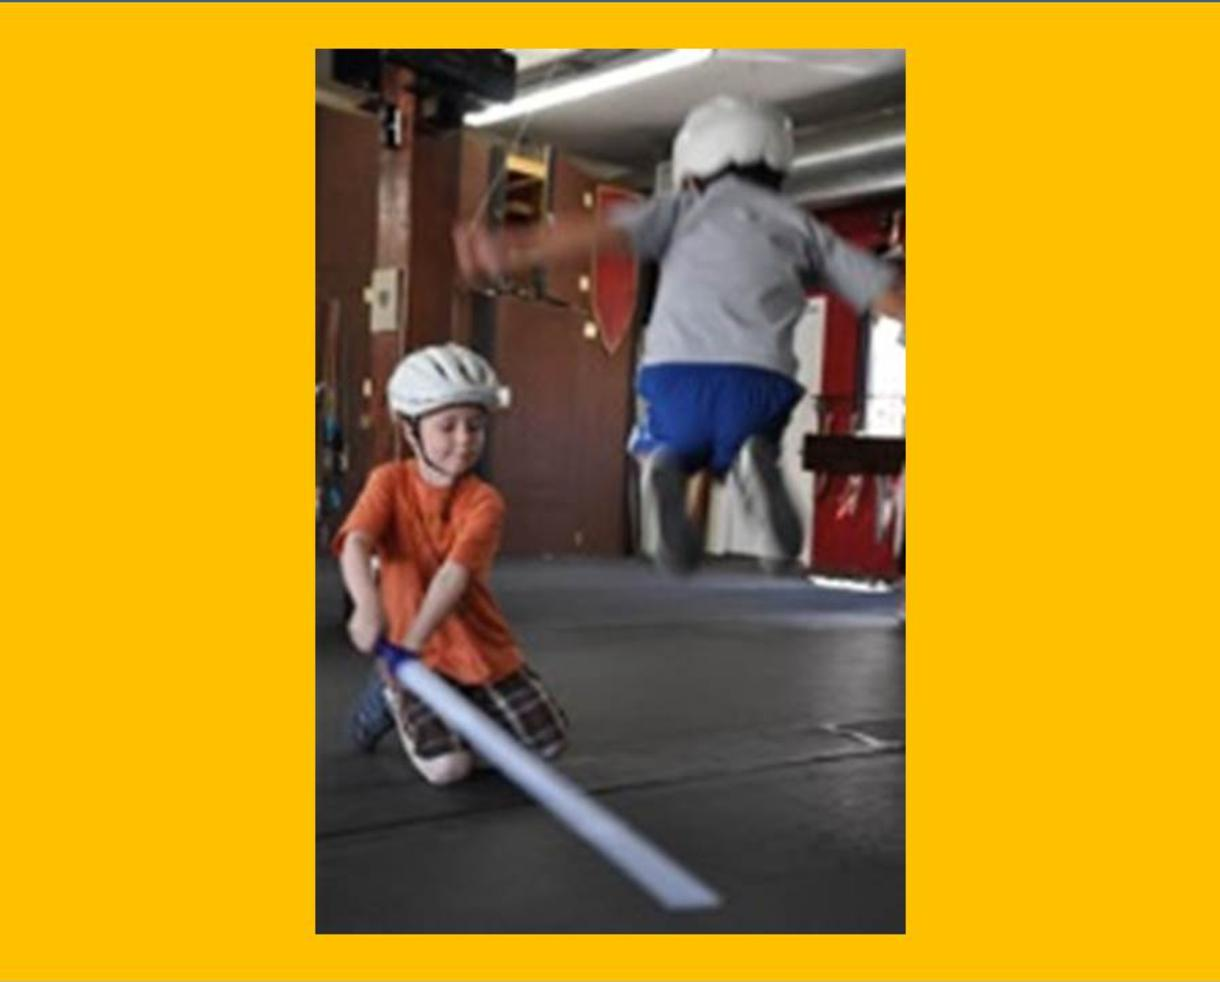 Jedi Lightsaber Classes For Kids Or Adults Burbank Or